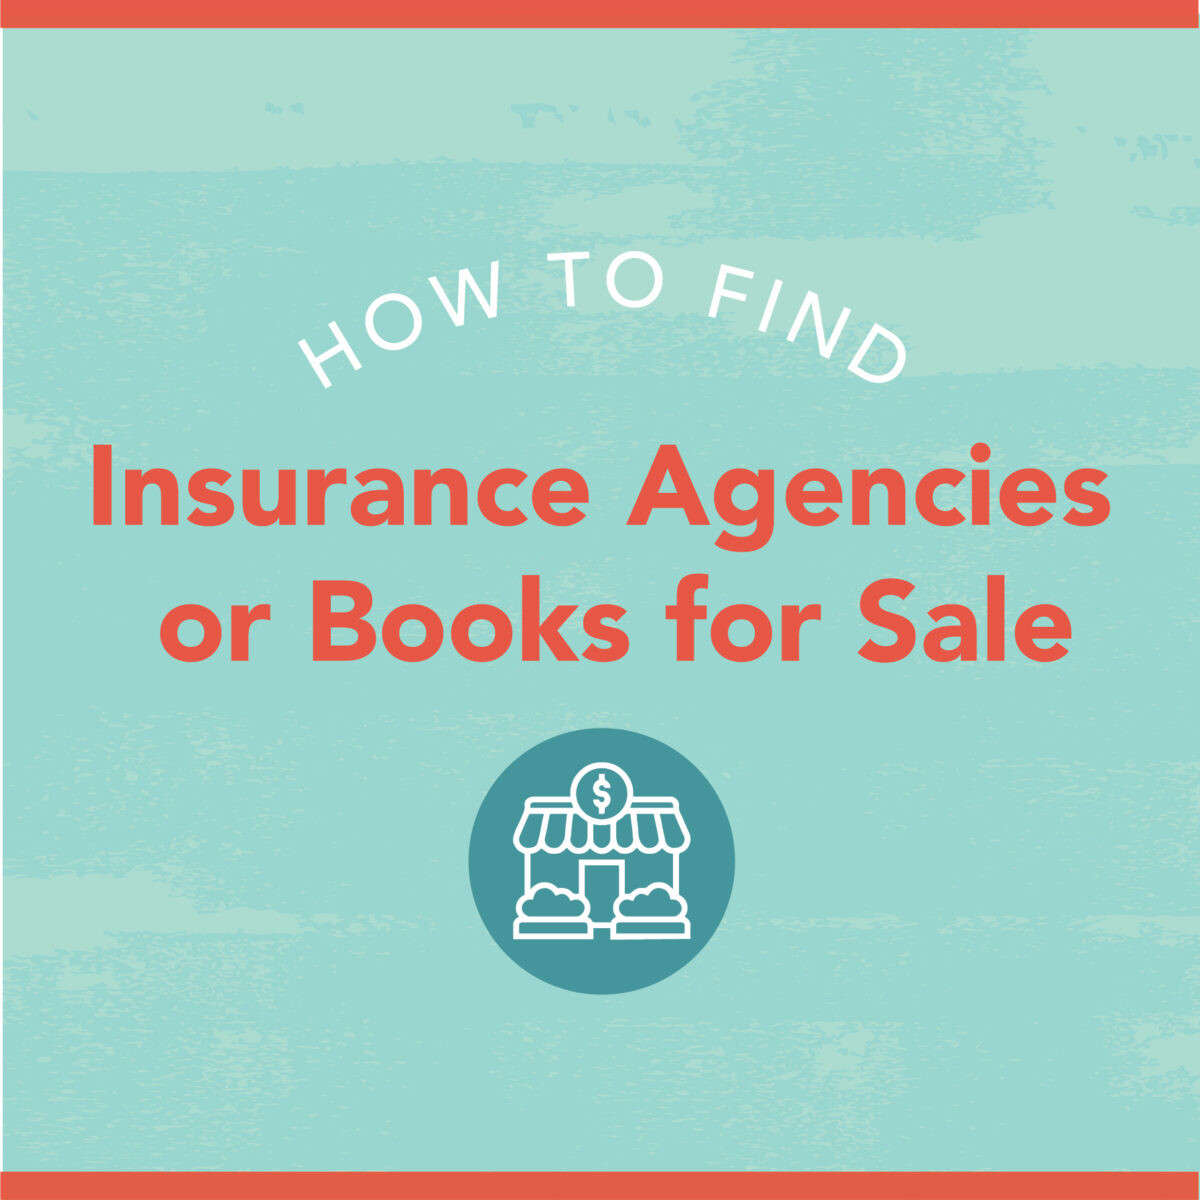 how to find insurance agencies or books for sale graphic